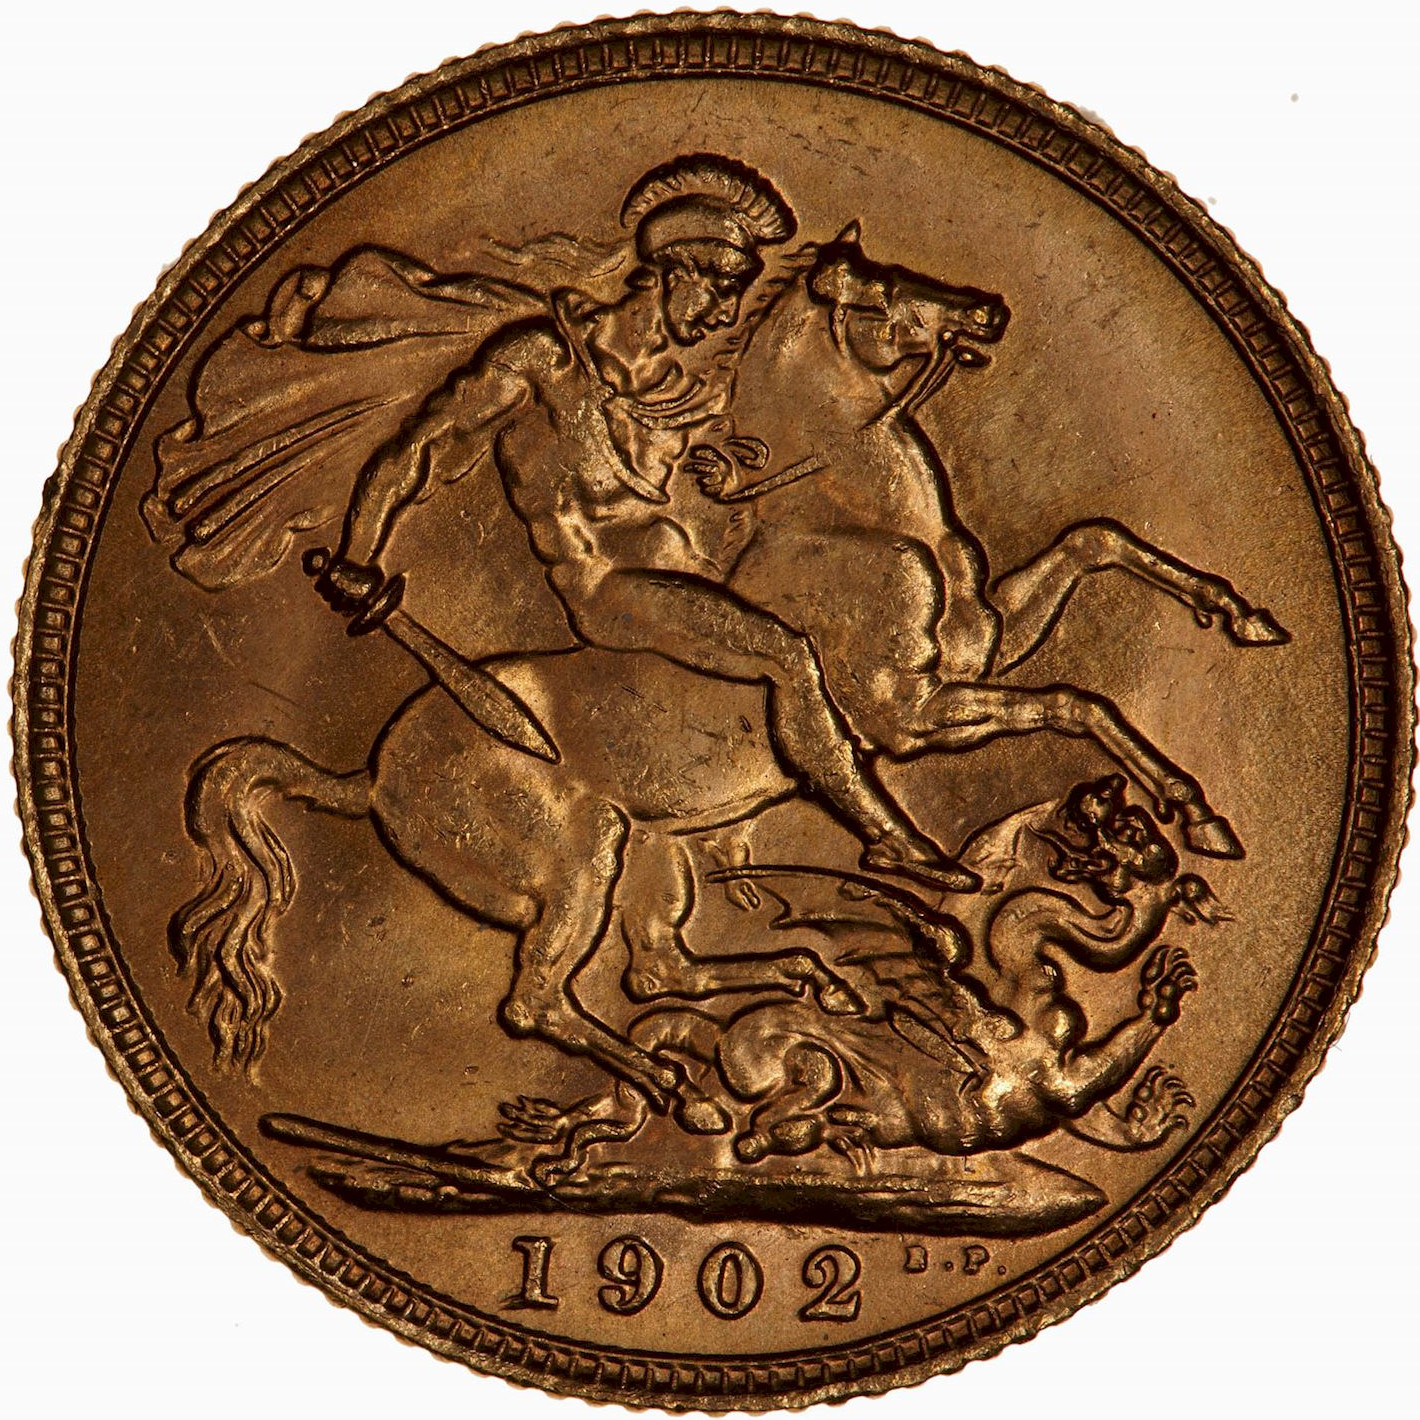 Sovereign (Pre-Decimal): Photo Coin - Sovereign, Edward VII, Great Britain, 1902